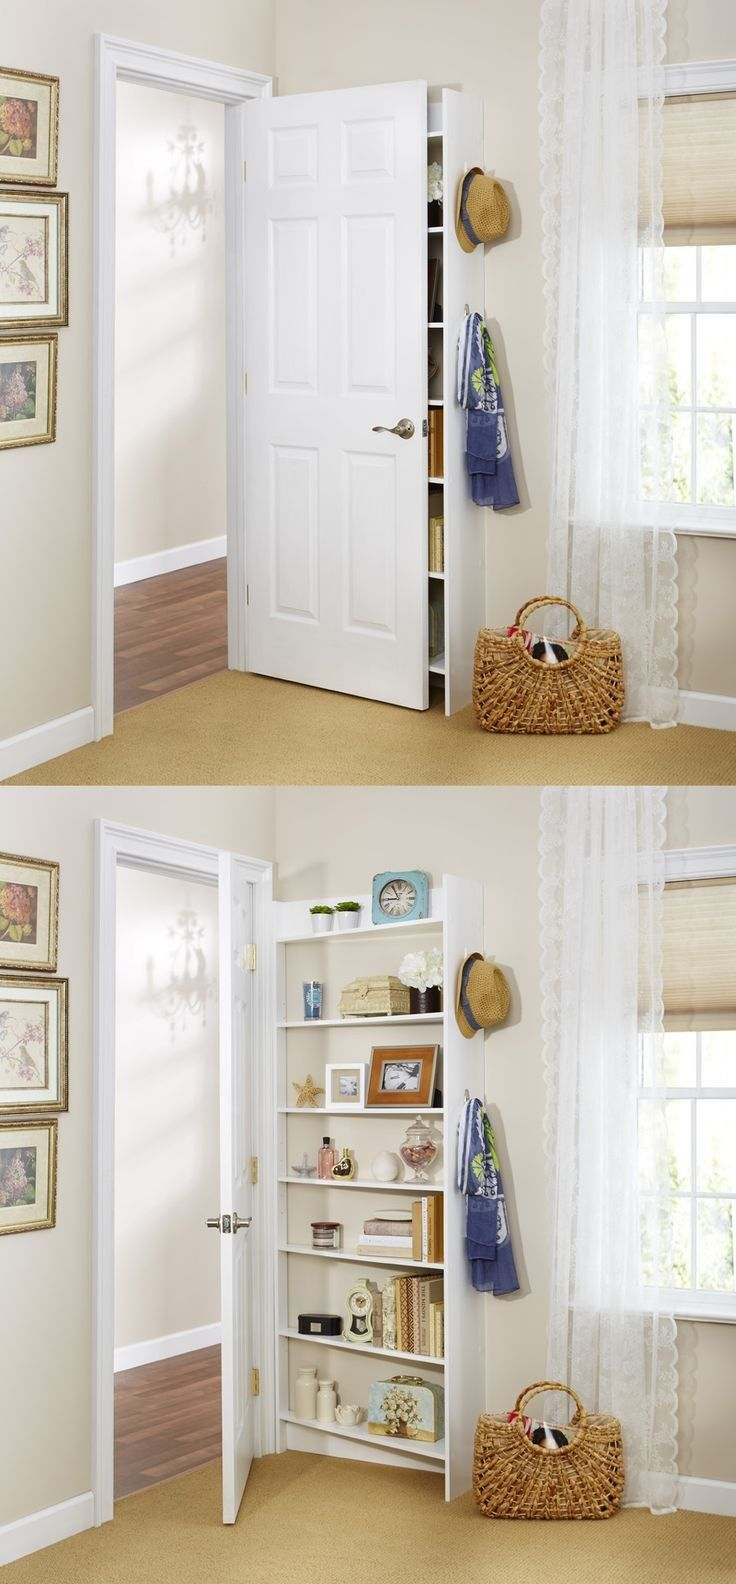 35+ Awesome Space Saving Ideas for Small Bedroom | Bedrooms, Spaces ...